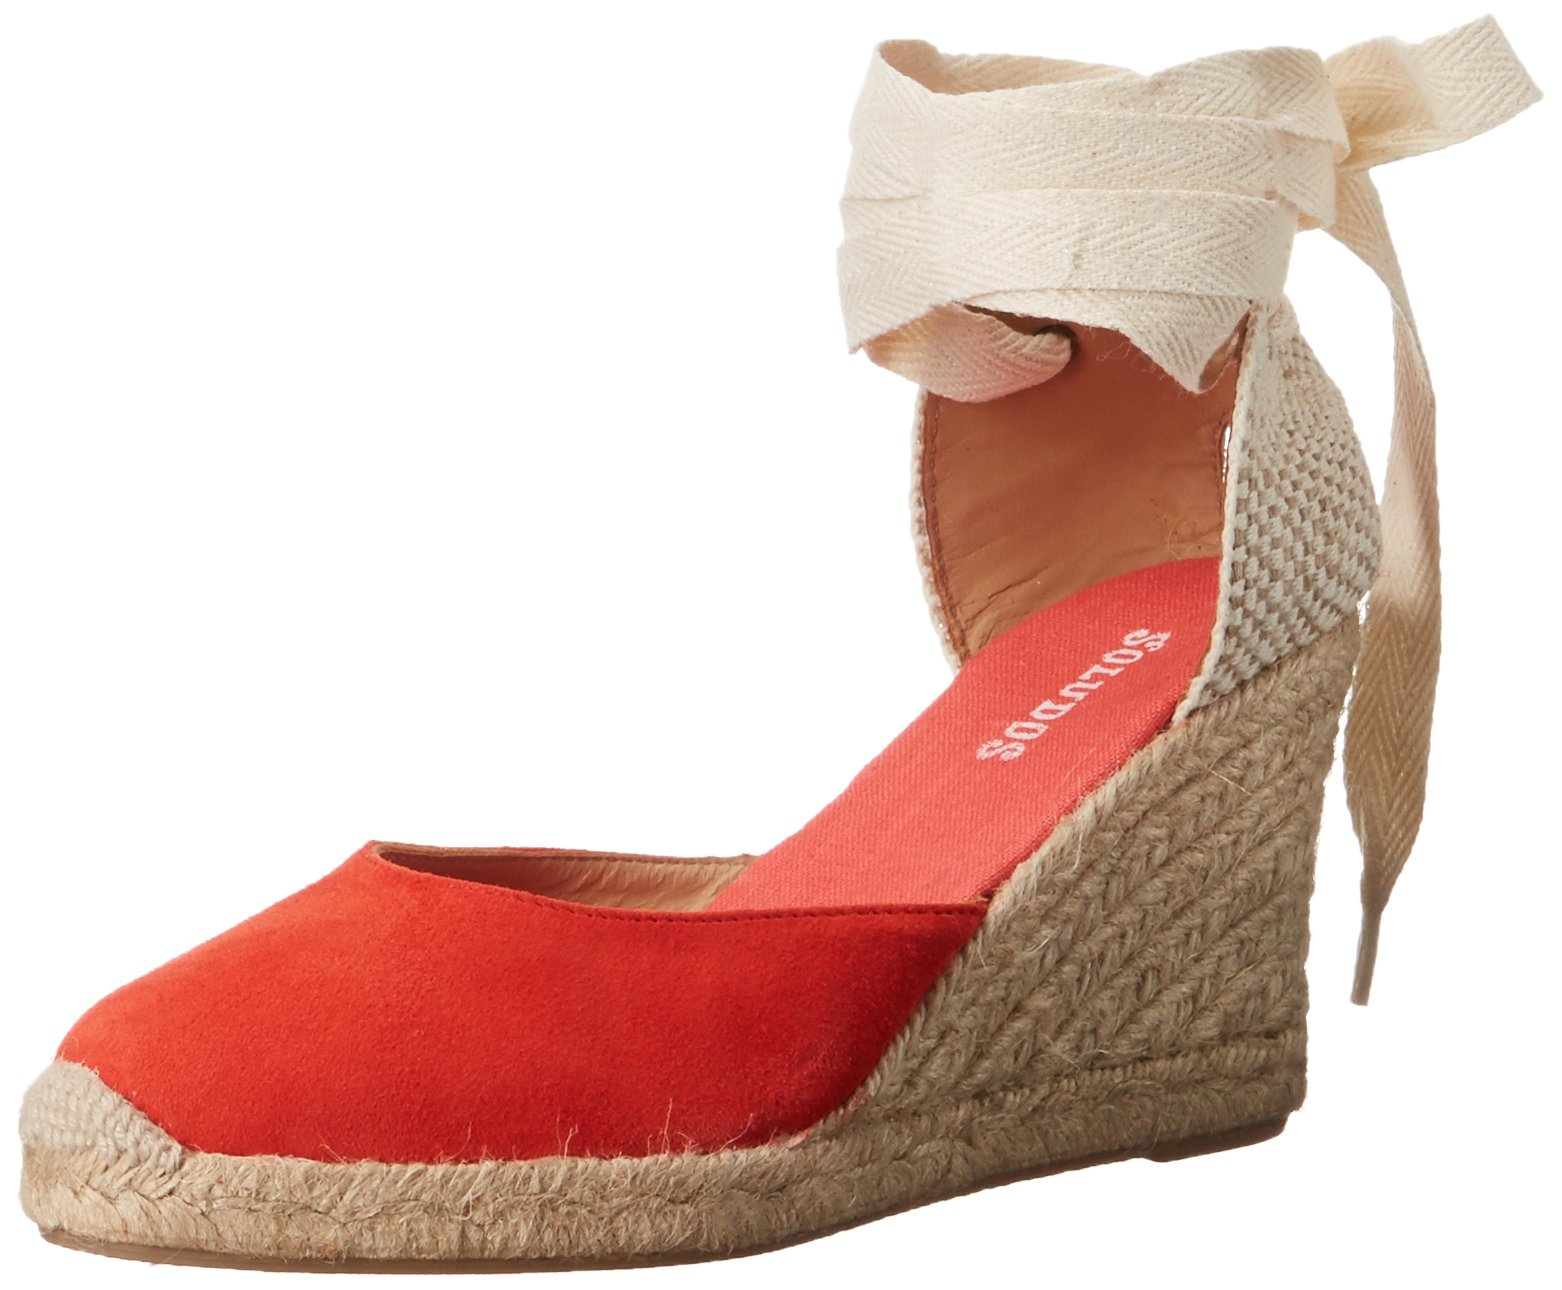 Soludos Women's Tall Wedge (90mm) Flat, Fire Red, 6 B US